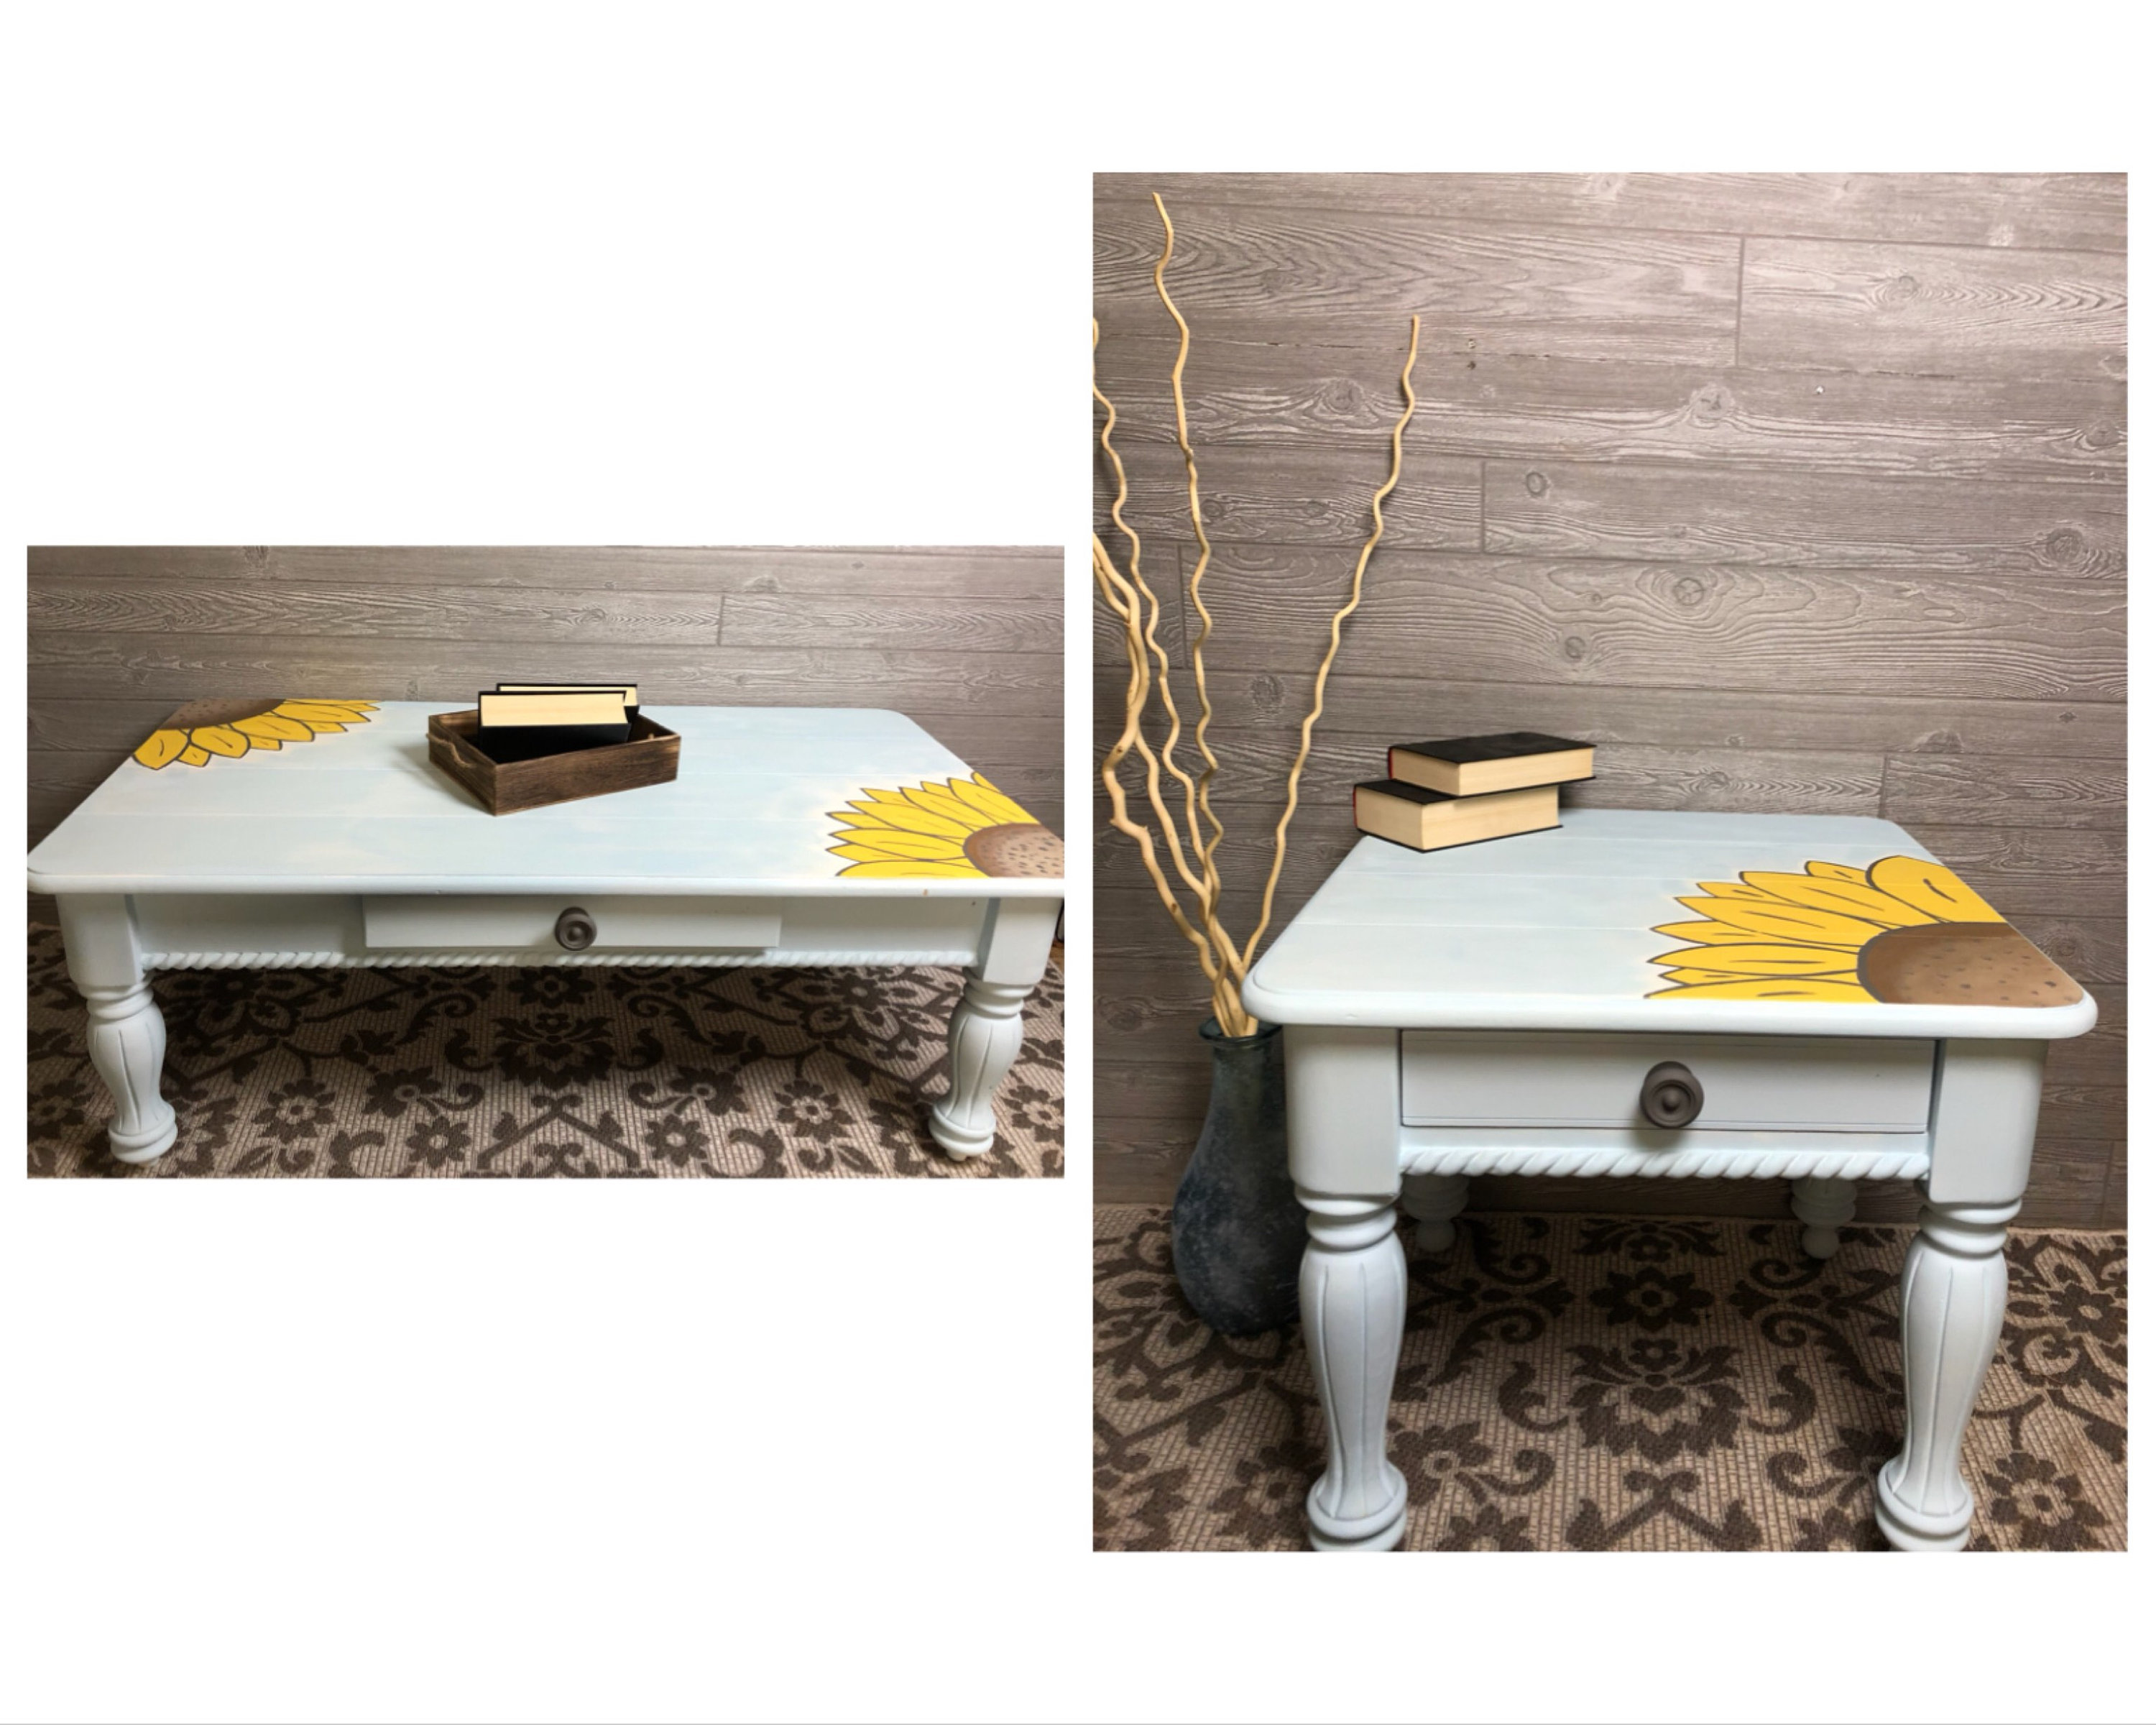 light blue coffee and end table with sunflowers etsy fullxfull mjen elephant leg mid century modern bedroom furniture sofa decoration living room fur iron pipe desk legs